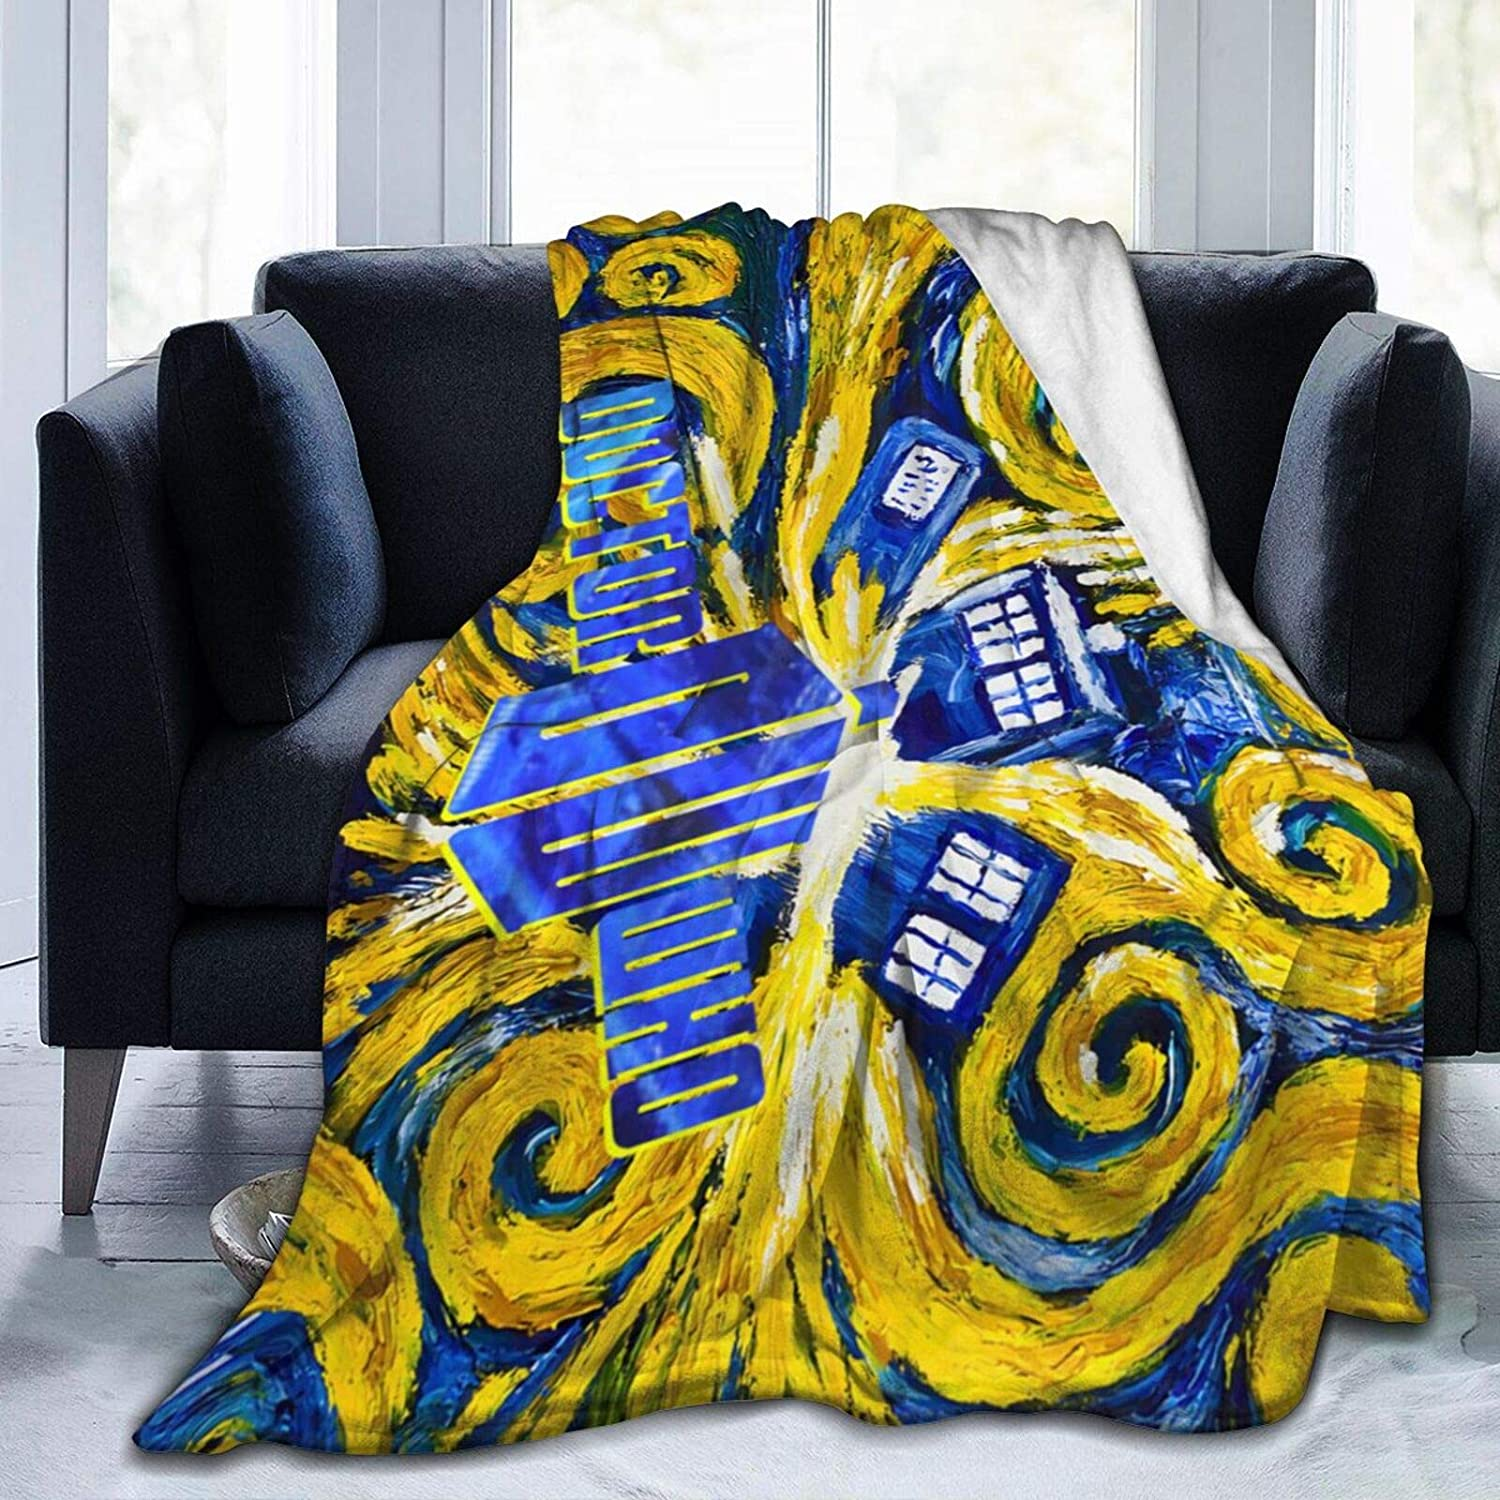 """Bestrgi Adults Kids Flannel Fleece Blanket D-o-c-tor W-h-o Christmas 3D Printing Bedroom Living Room Home Throw Blanket for Bed Couch Chair Sofa Travel 50""""x40"""" Decor All Seasons"""